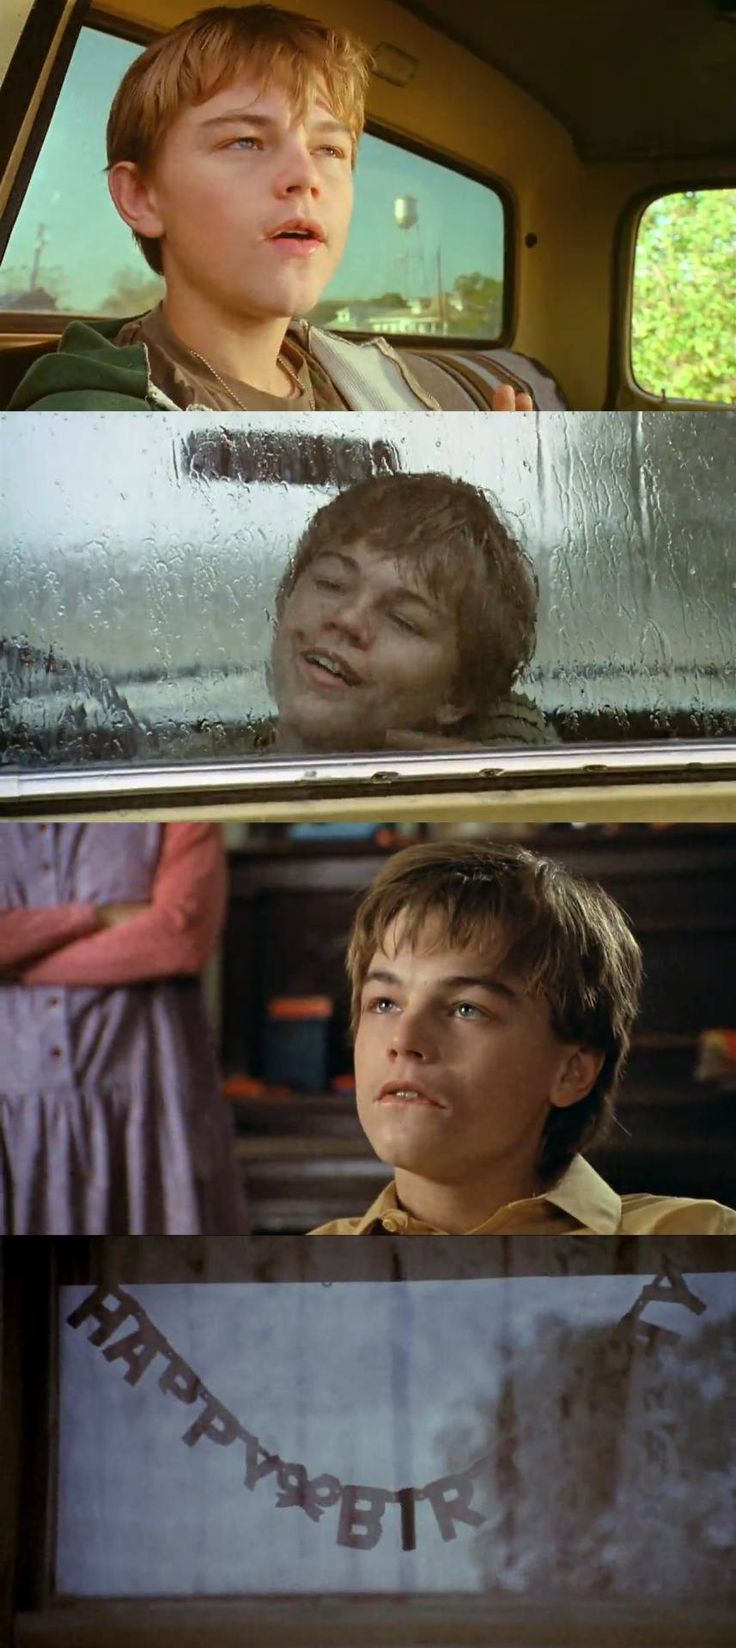 """Leonardo DiCaprio as """"Arnie"""" in What's Eating Gilbert Grape (1993). One of the best movies I have ever watched."""